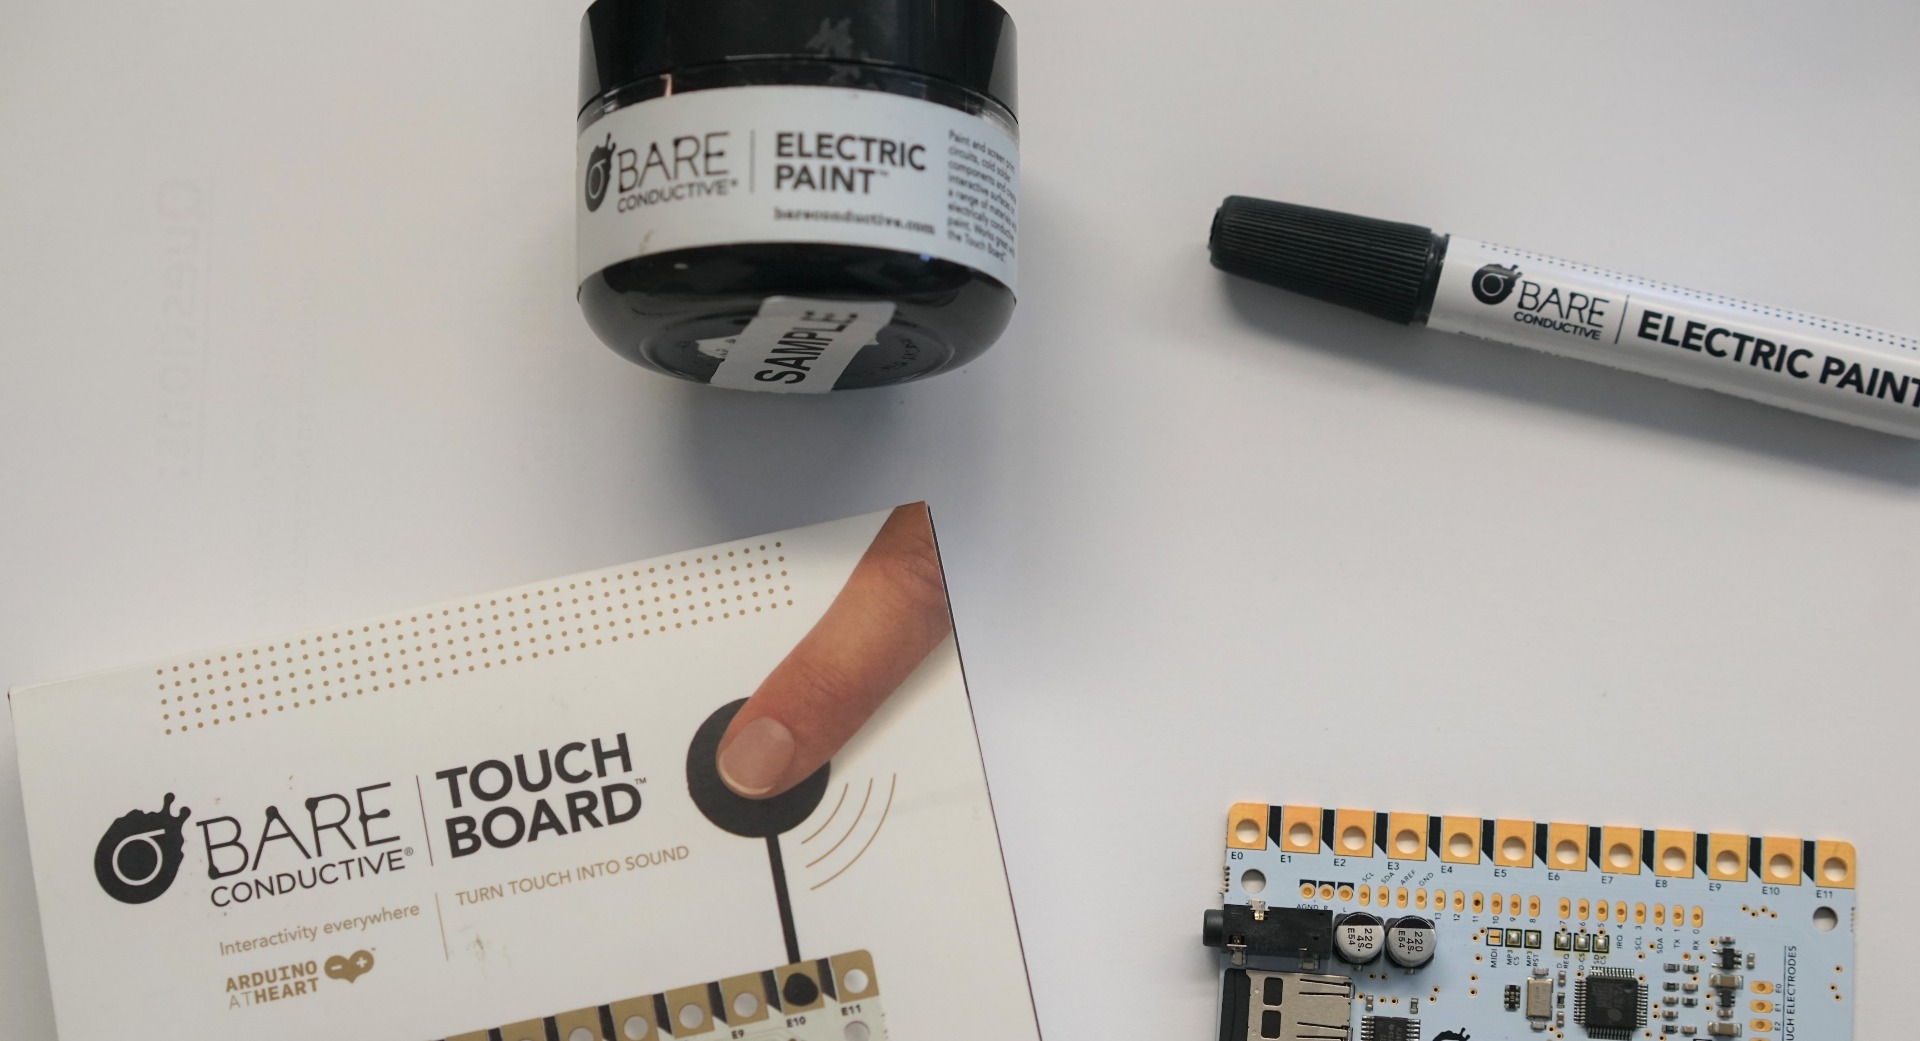 eduporium experiment bare conductive touch boardi would highly suggest buying a bare conductive stencil as it saves a lot of time for students when setting up their sensors and makes the final product